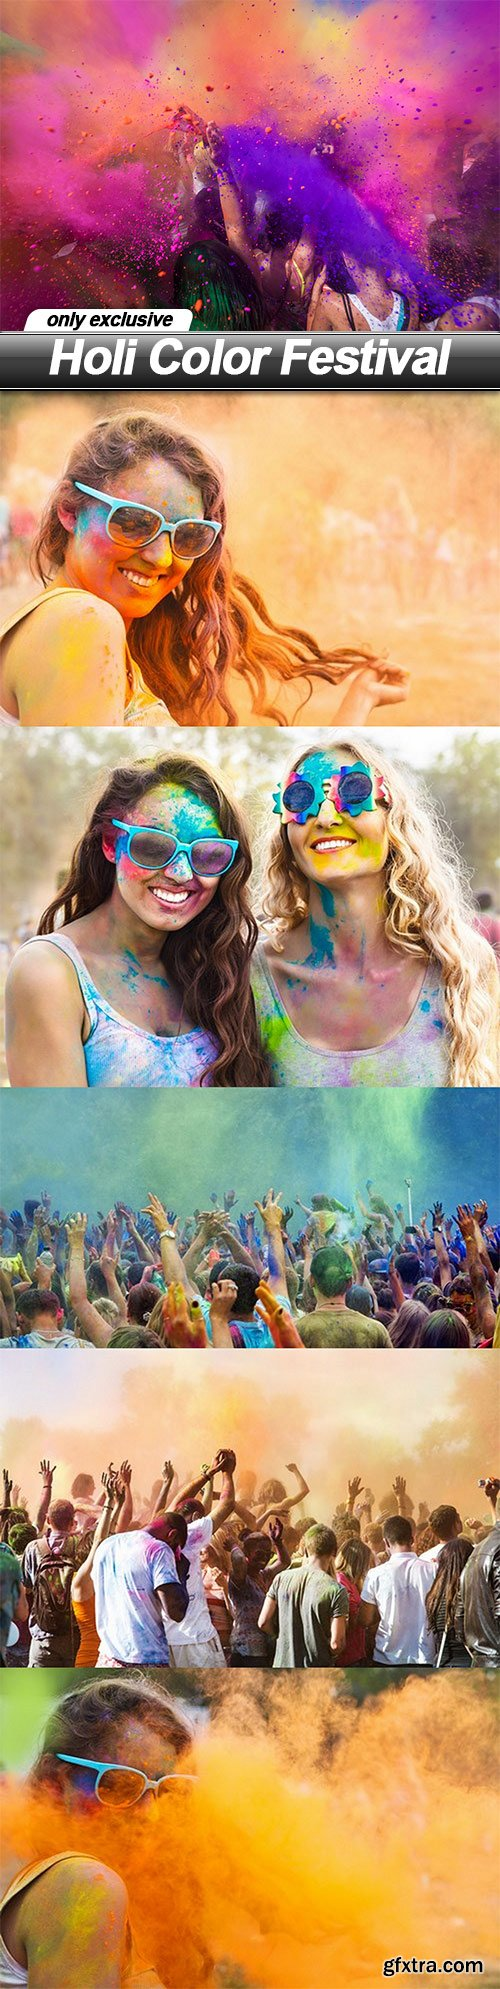 Holi Color Festival - 6 UHQ JPEG